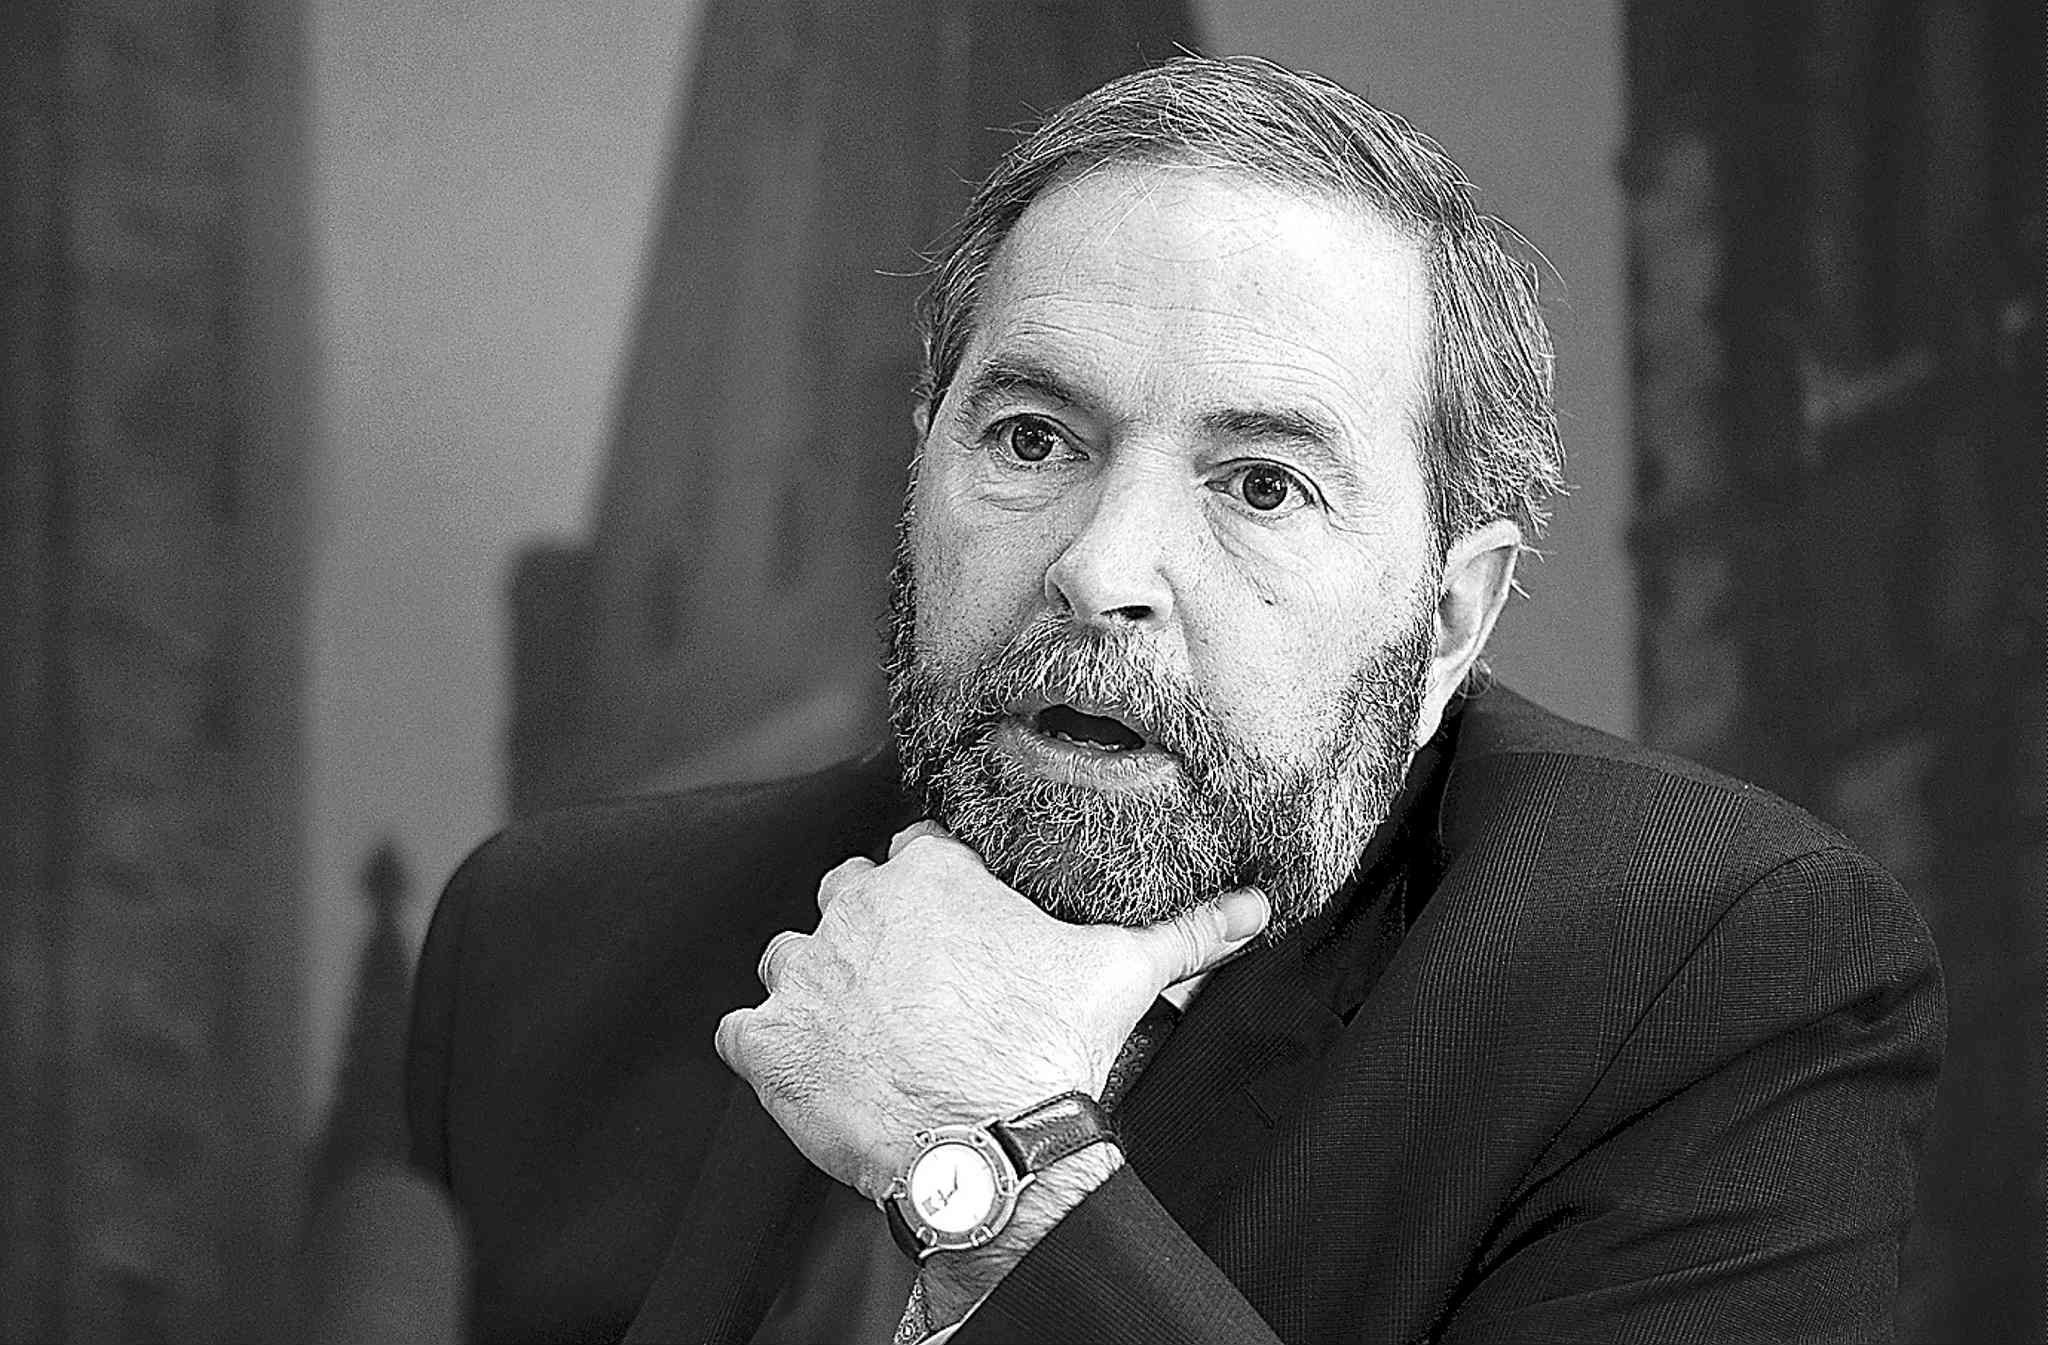 Media give short shrift to Tom Mulcair (above) while fawning over Justin Trudeau, a reader says.